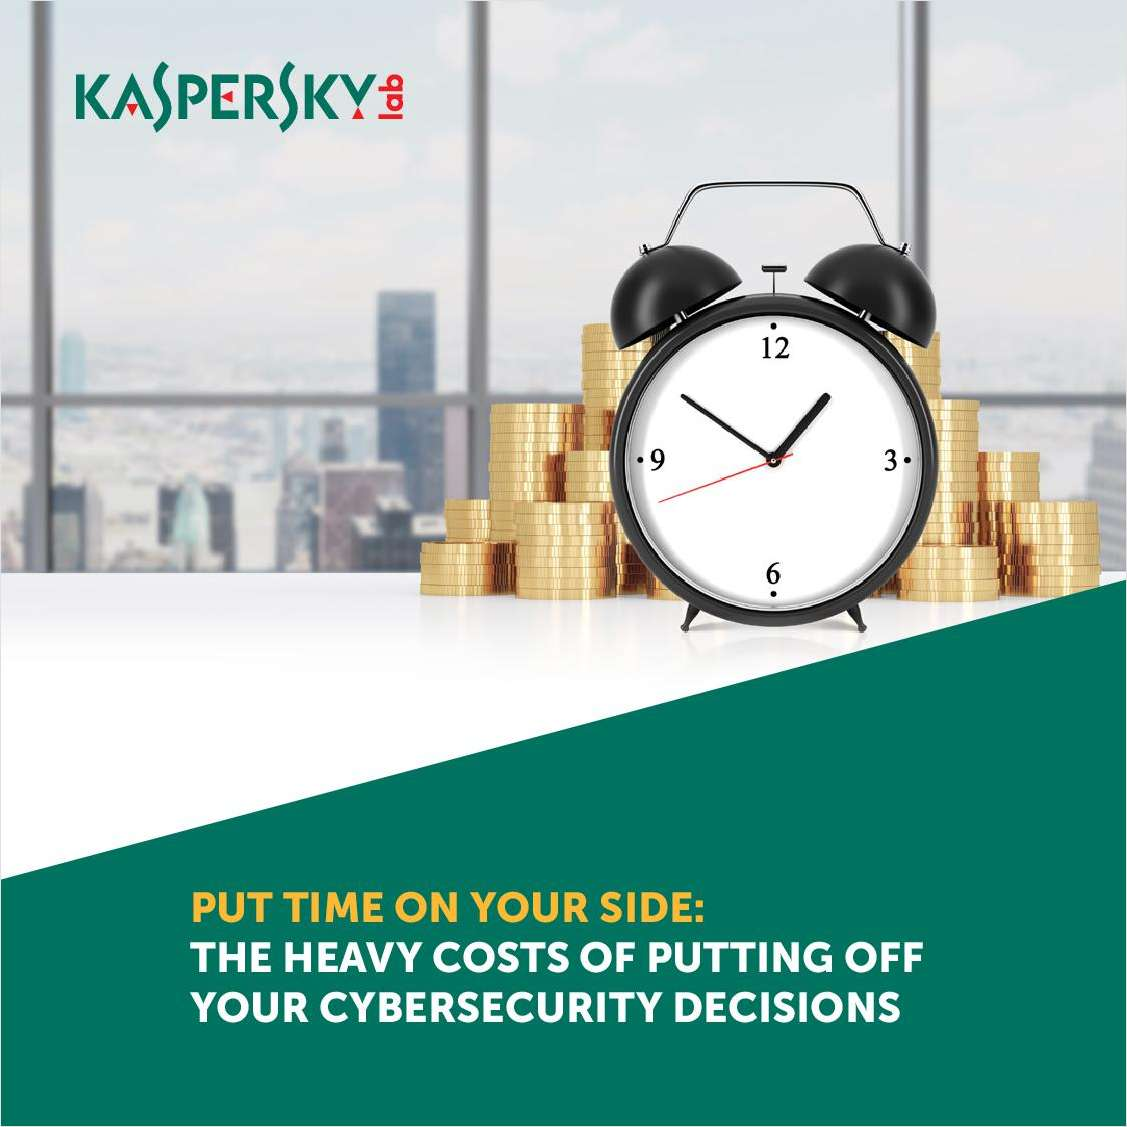 Put Time On Your Side: The Heavy Cost Of Putting Off Your Cybersecurity Decisions